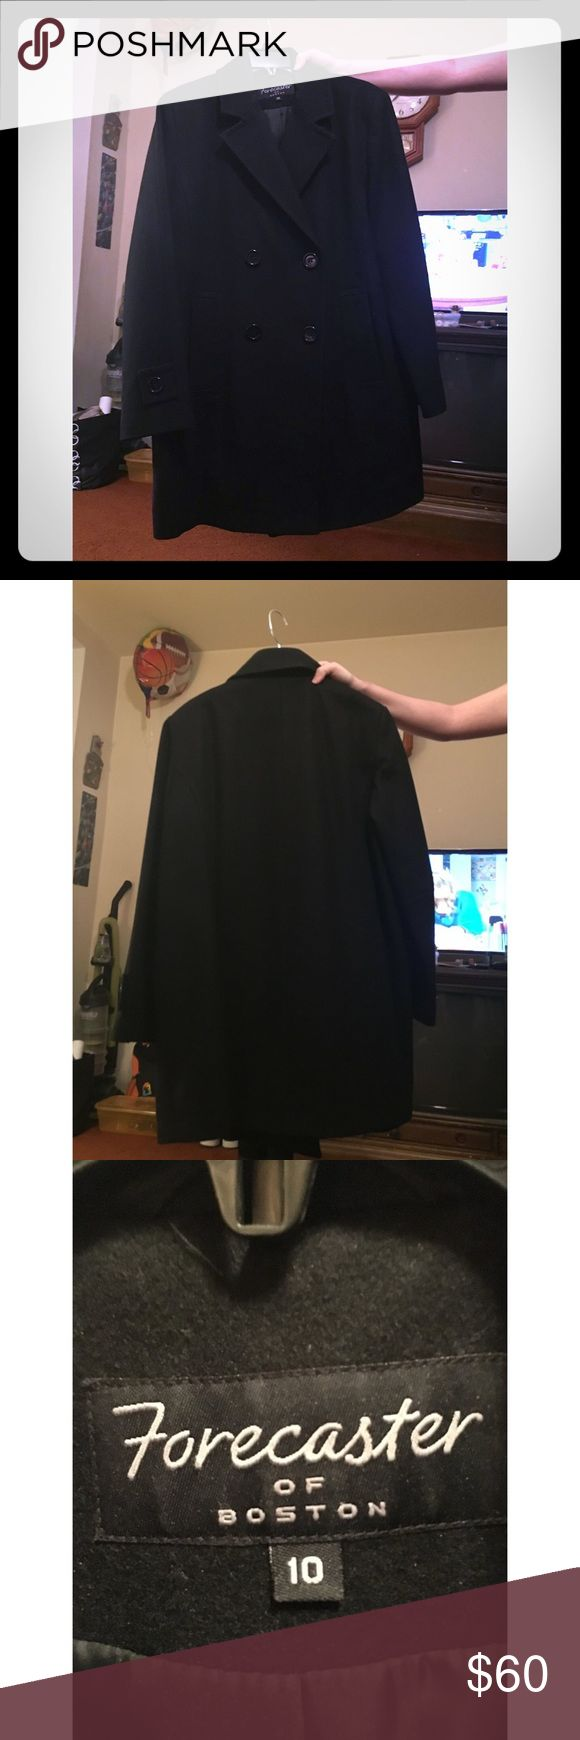 💲DEAL💲Forecaster of Boston Peacoat •Forecaster of Boston Peacoat •Size: 10 •Wool •Gently used ; excellent condition •Mid-thigh length •Ideal for the chilly months Jackets & Coats Pea Coats